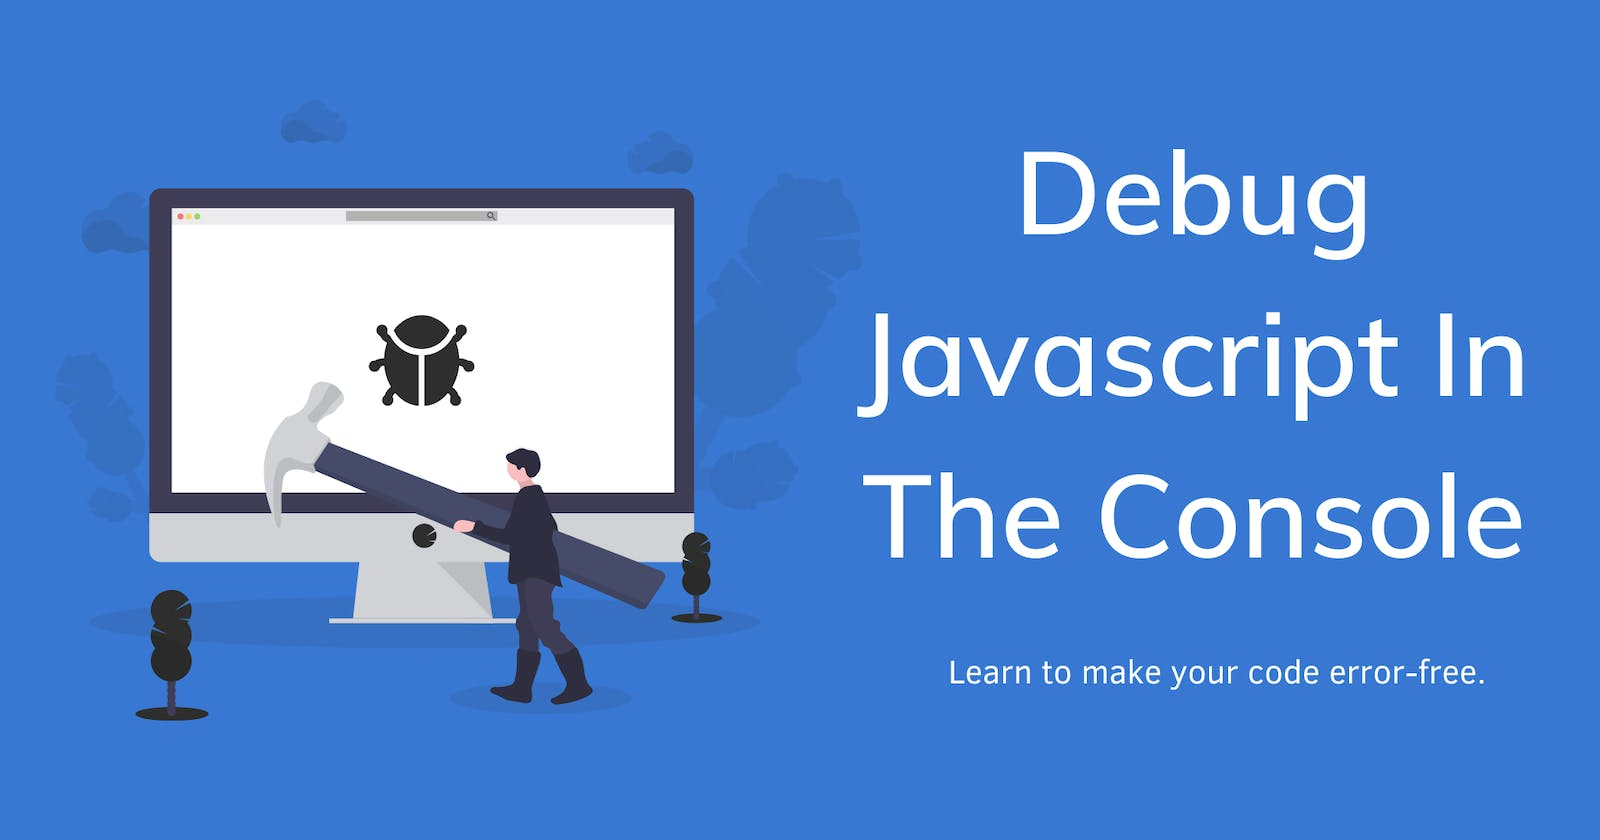 Debug Javascript In The Console